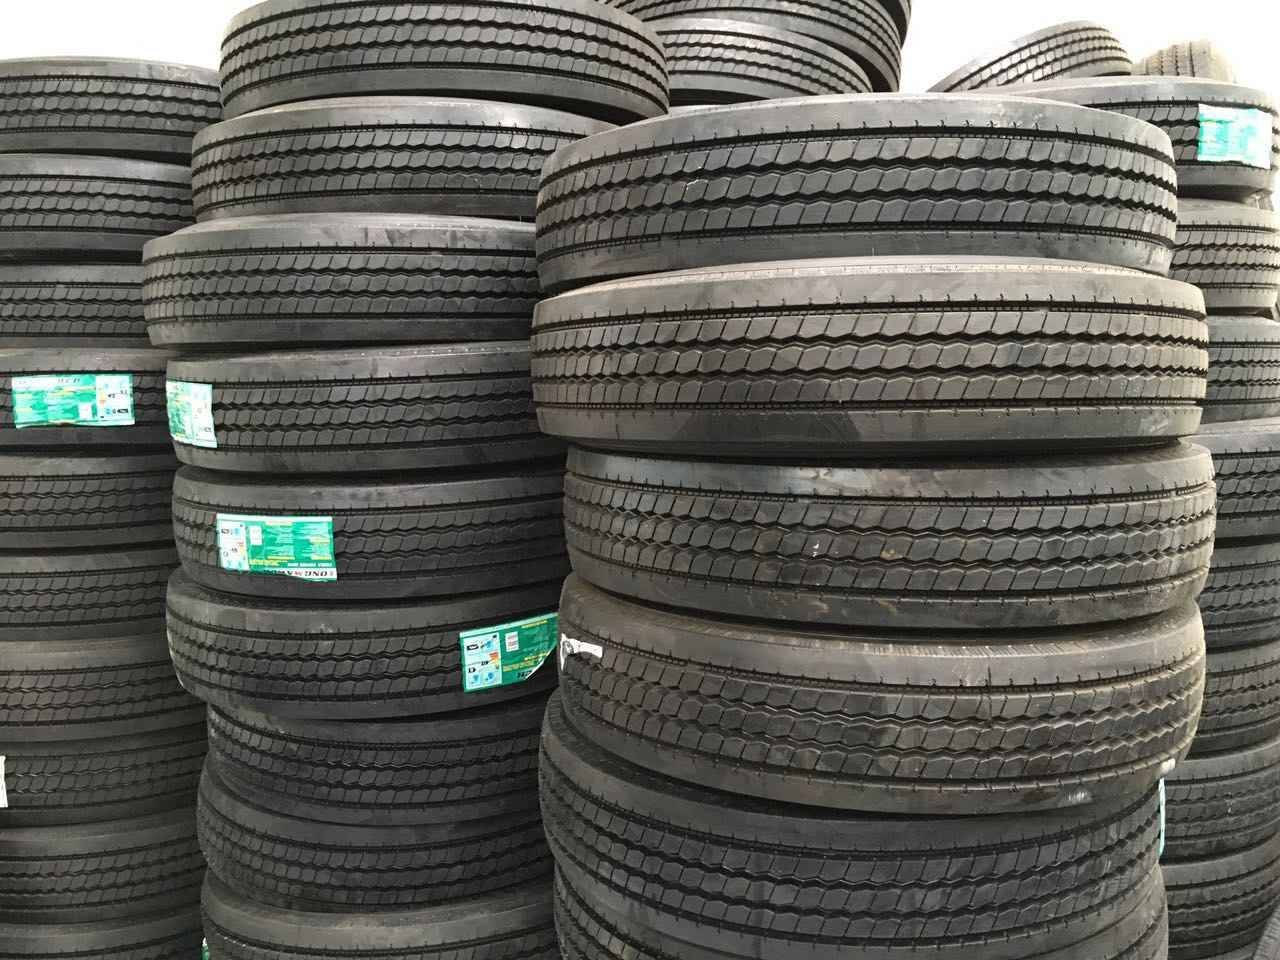 Longmarch All Steel Radial Truck Tyres with High Quality